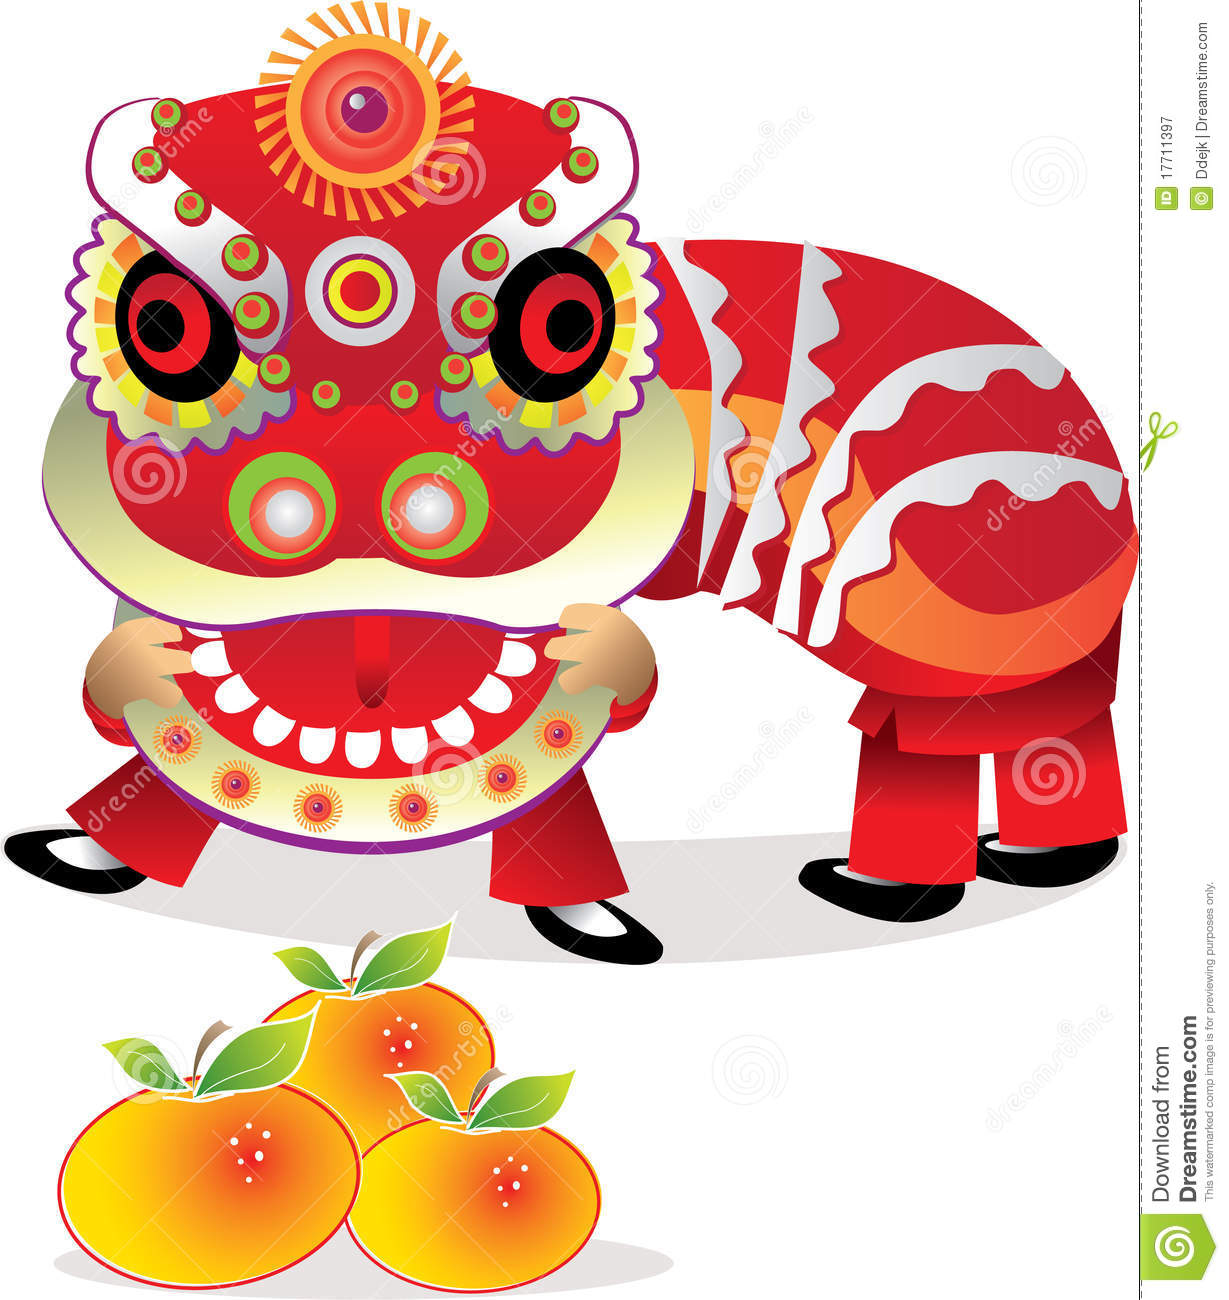 hight resolution of lunar new year clipart free